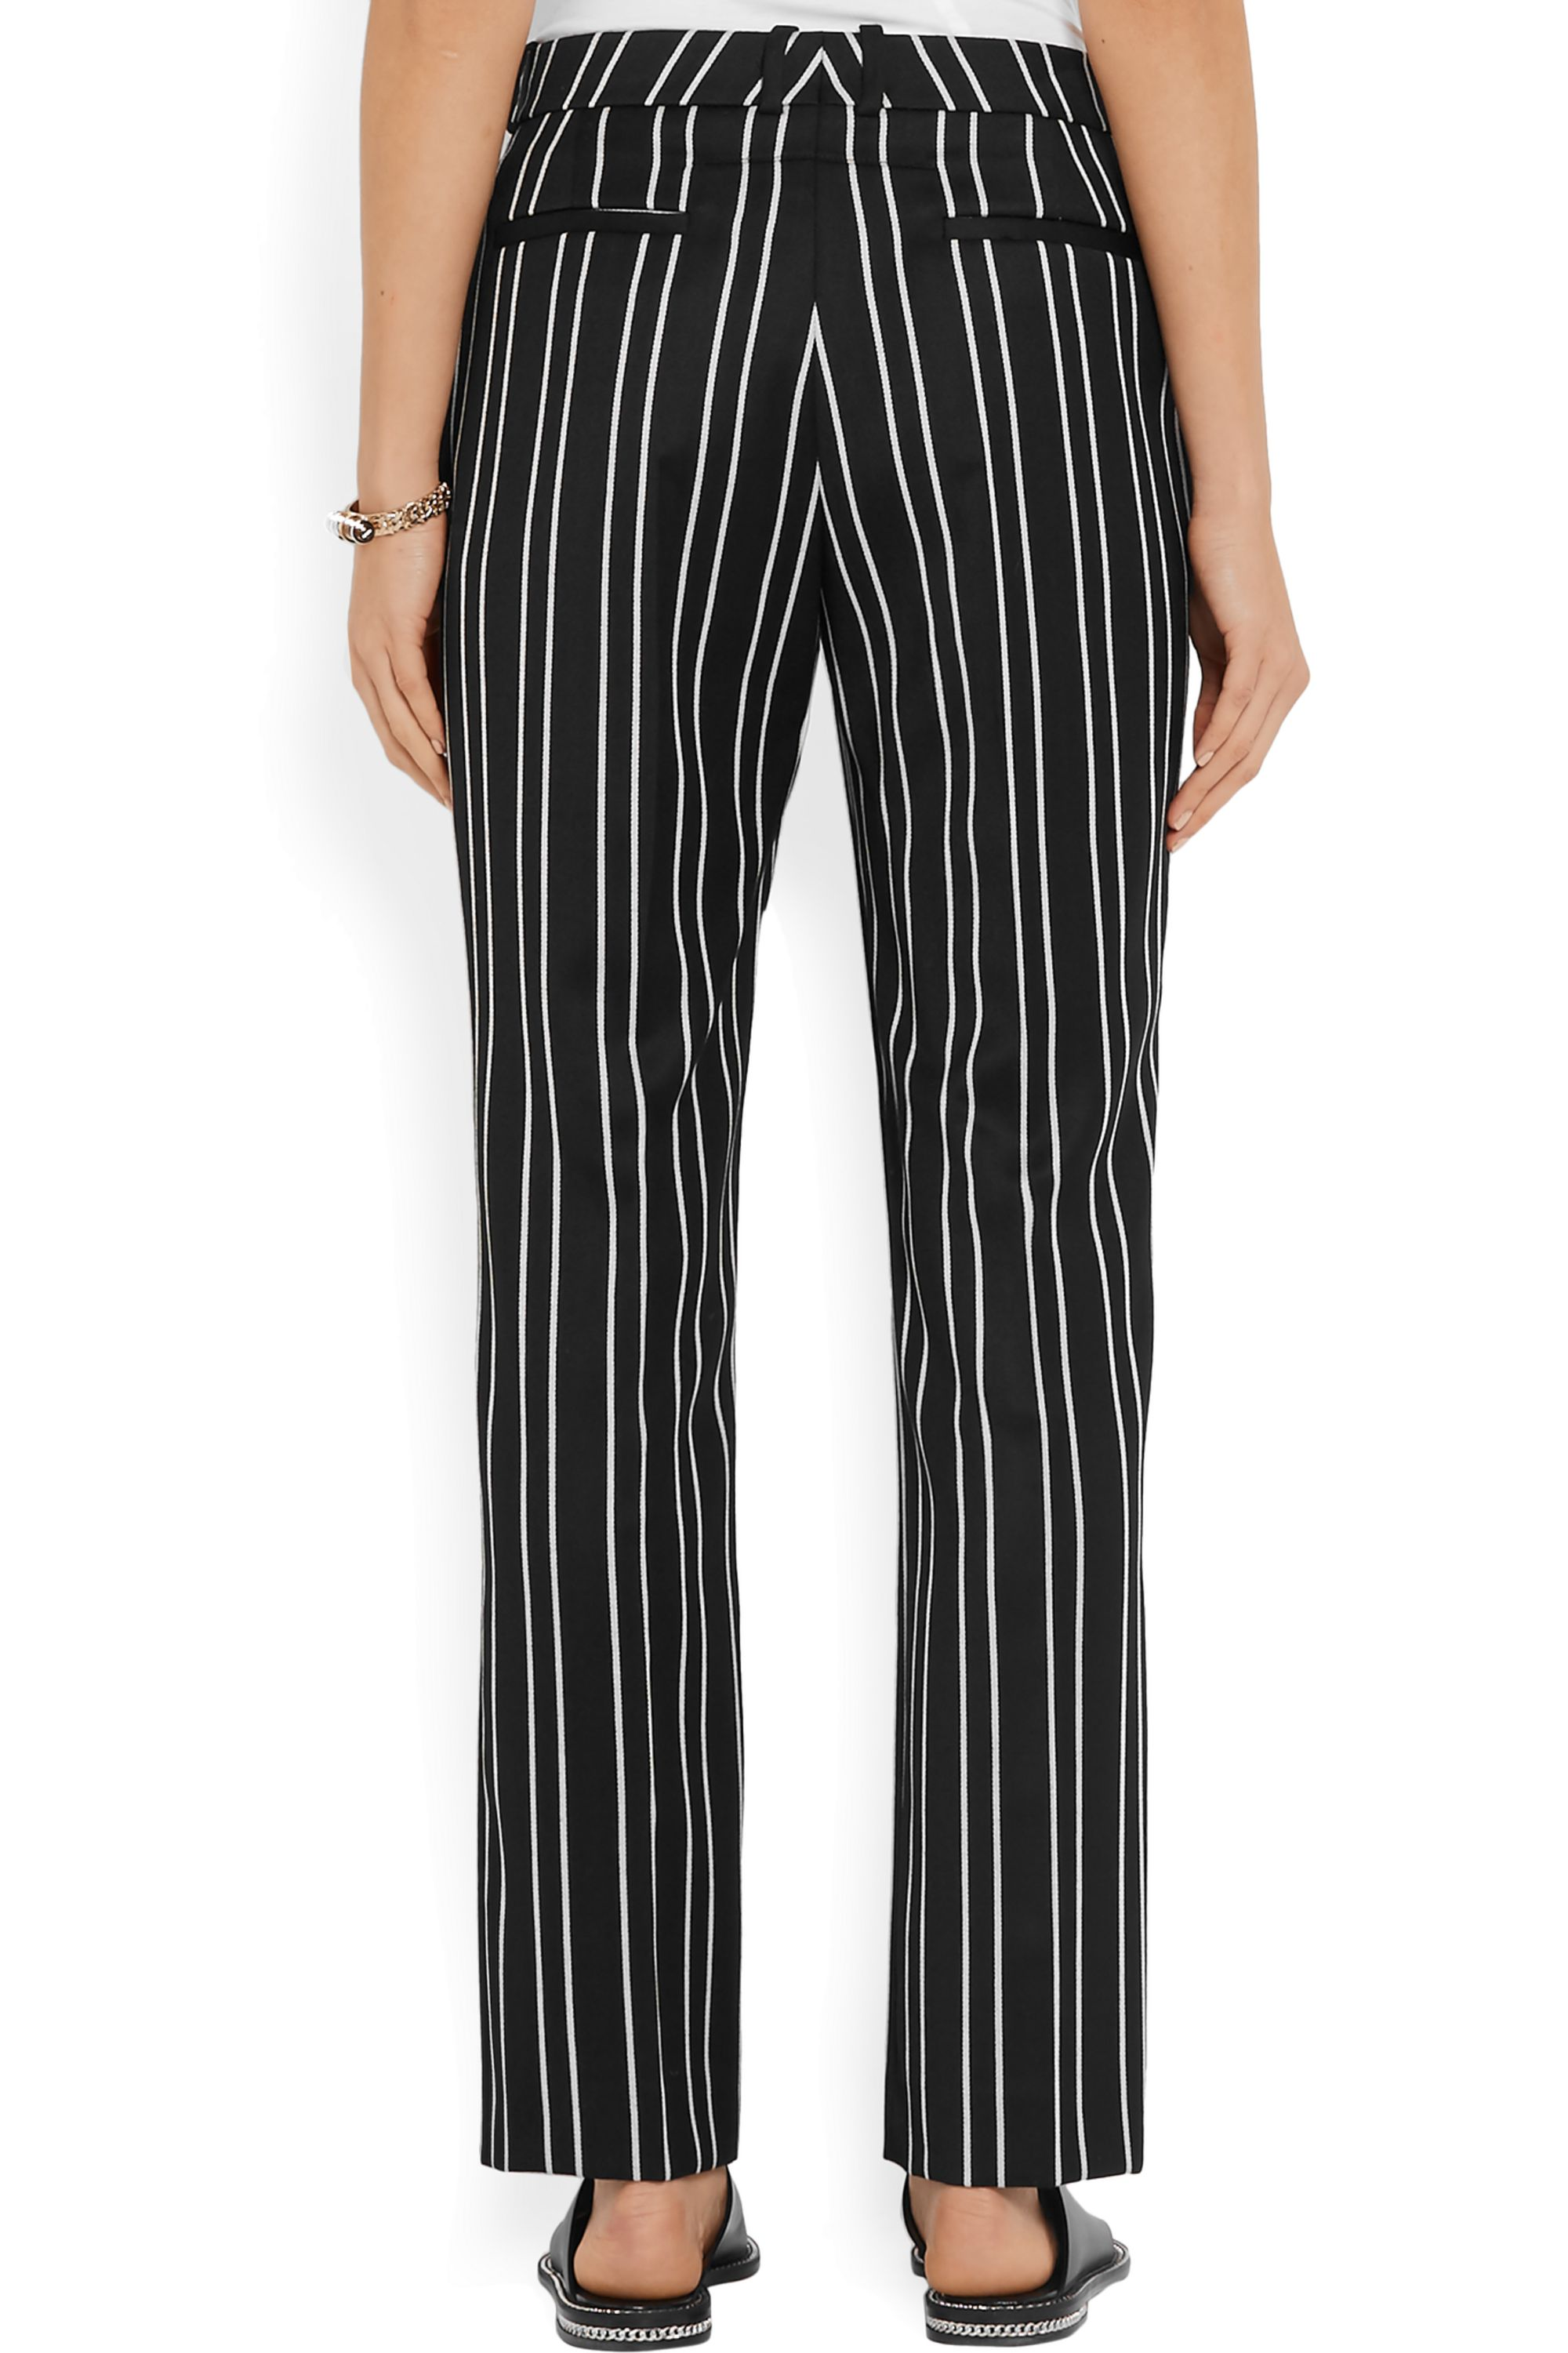 Givenchy Straight-leg pants in black and white striped wool-jacquard